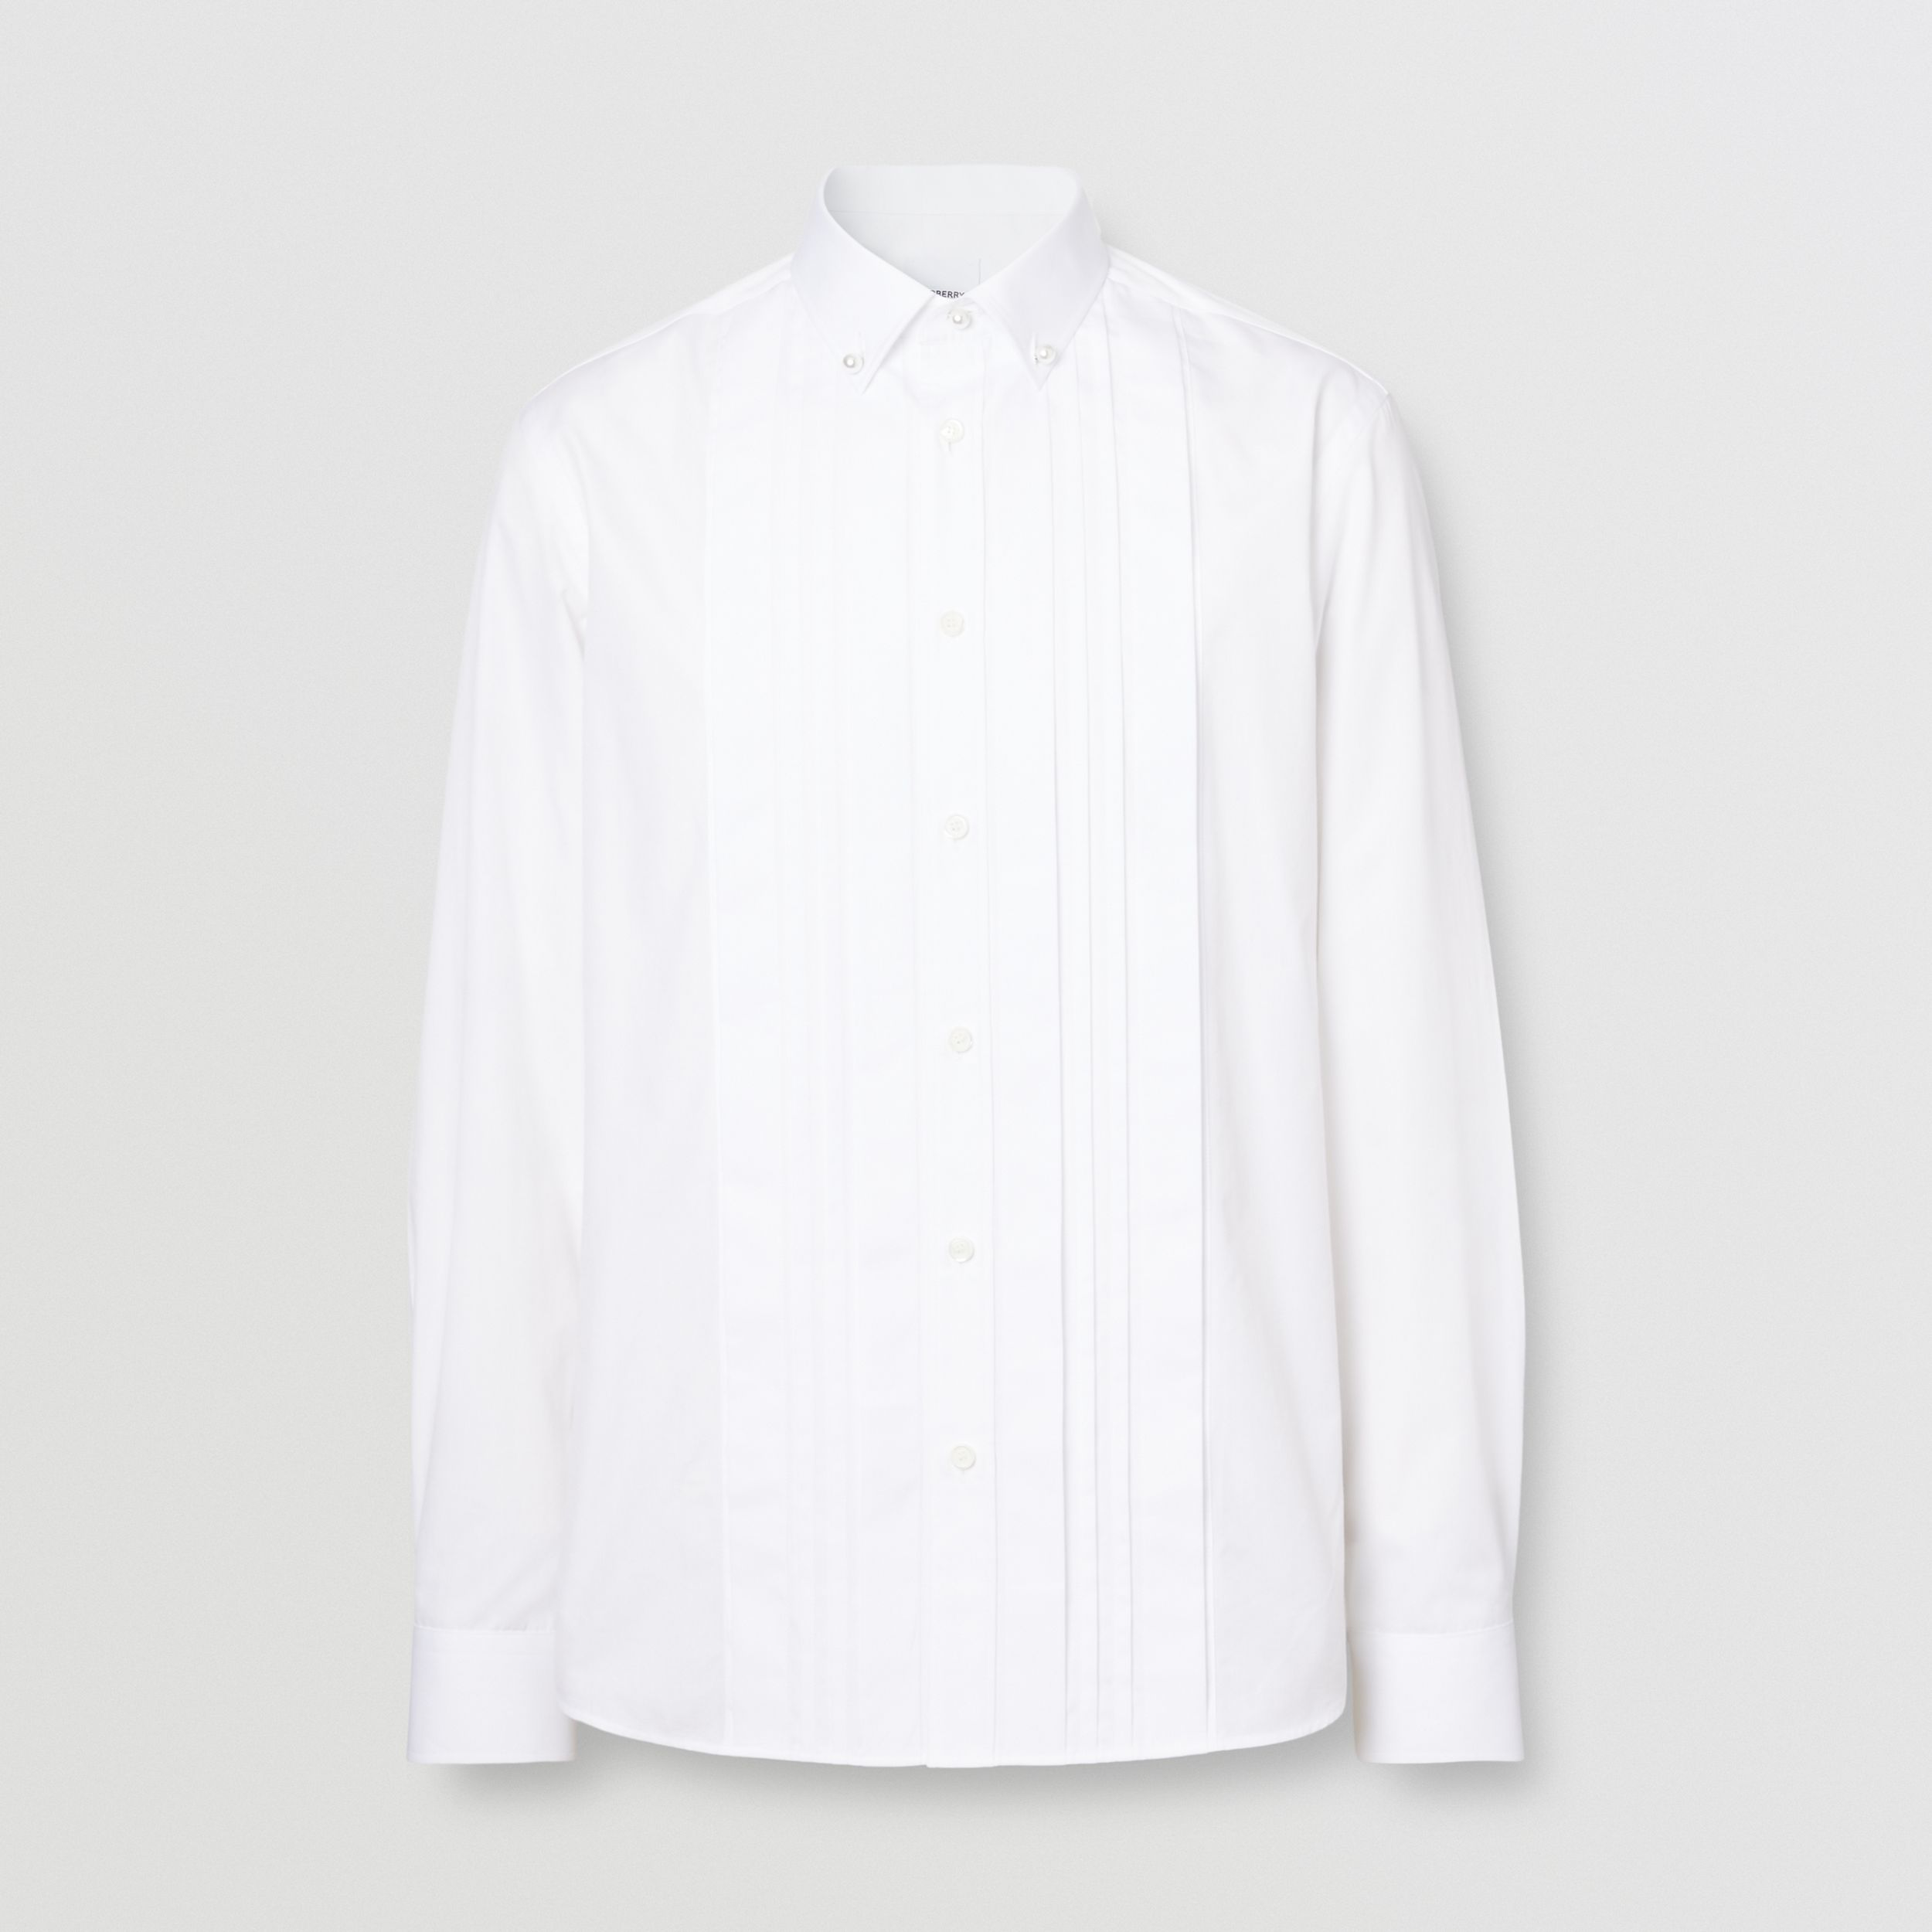 Resin Pearl Detail Cotton Poplin Dress Shirt in White - Men | Burberry - 4